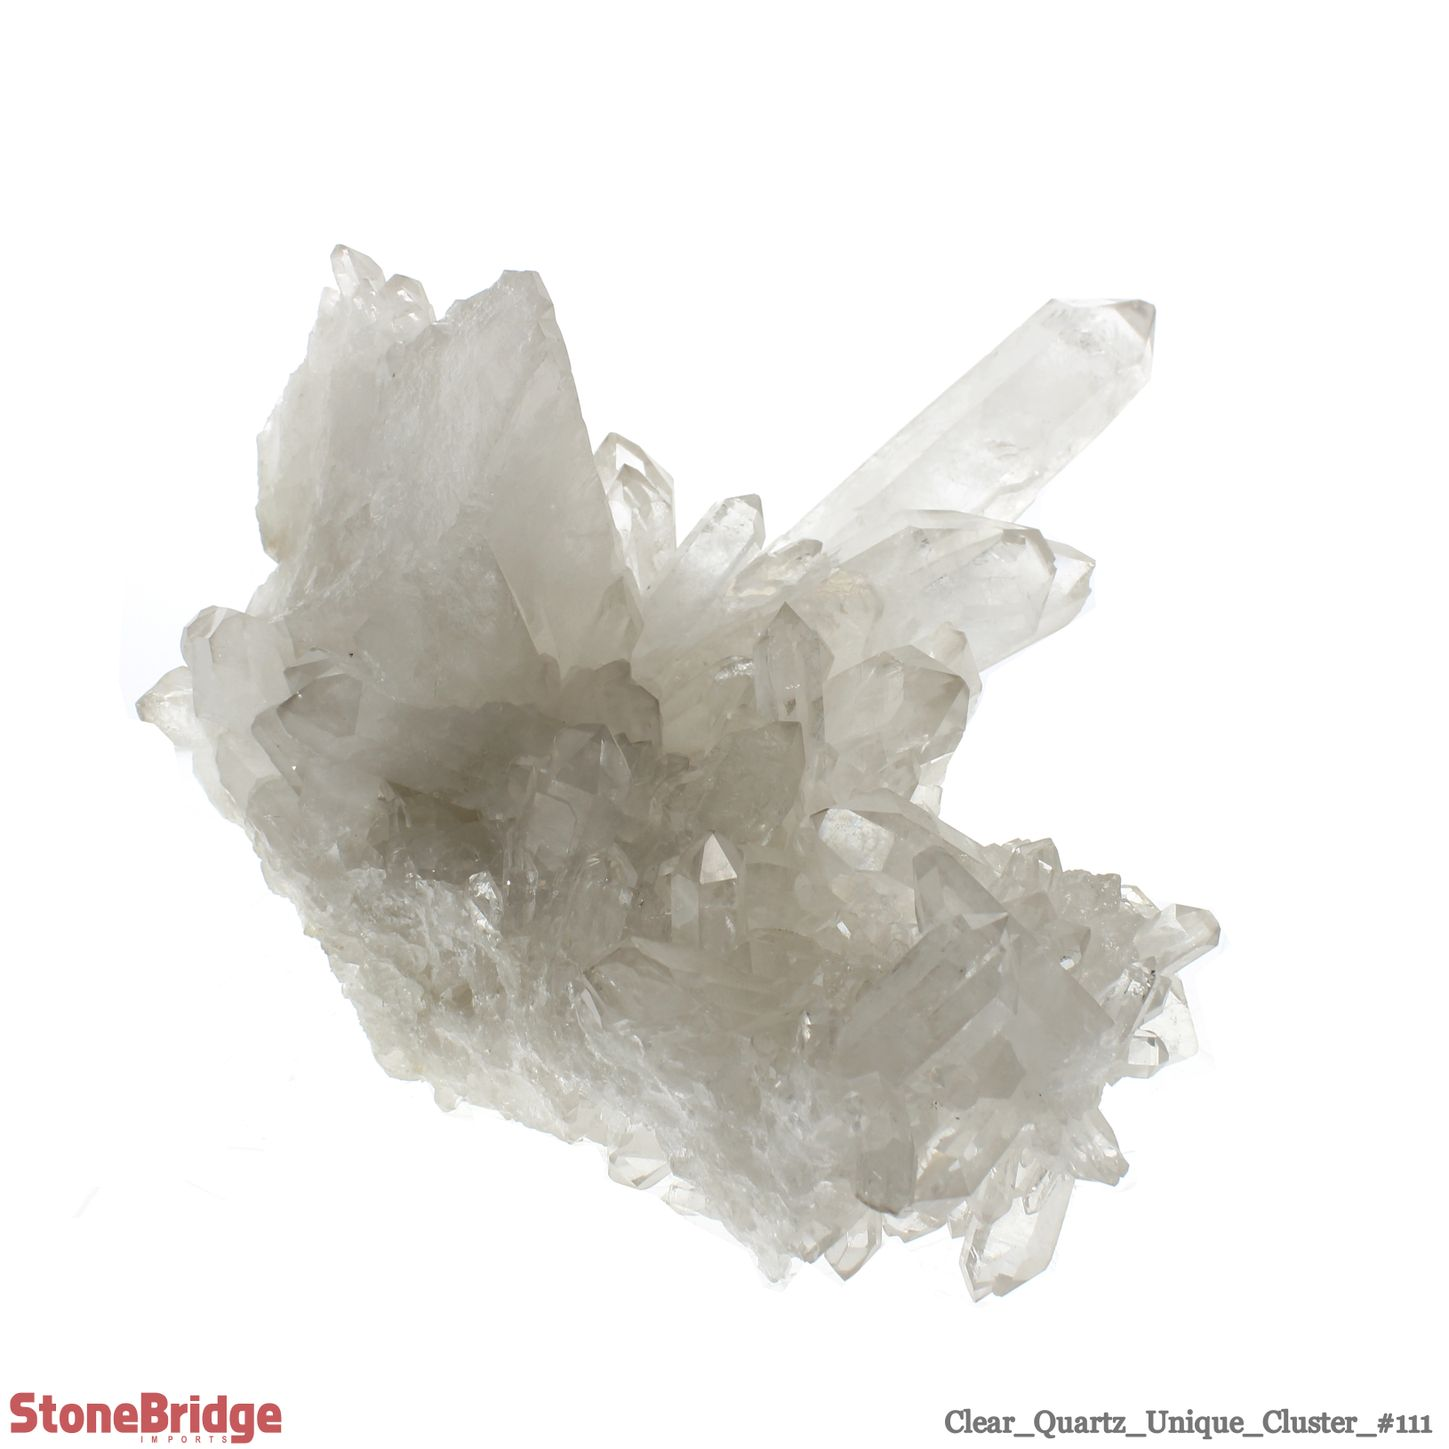 "Clear Quartz Cluster - Unique #111 - 10 3/4"" x 9 1/4"" x 9 1/2"""